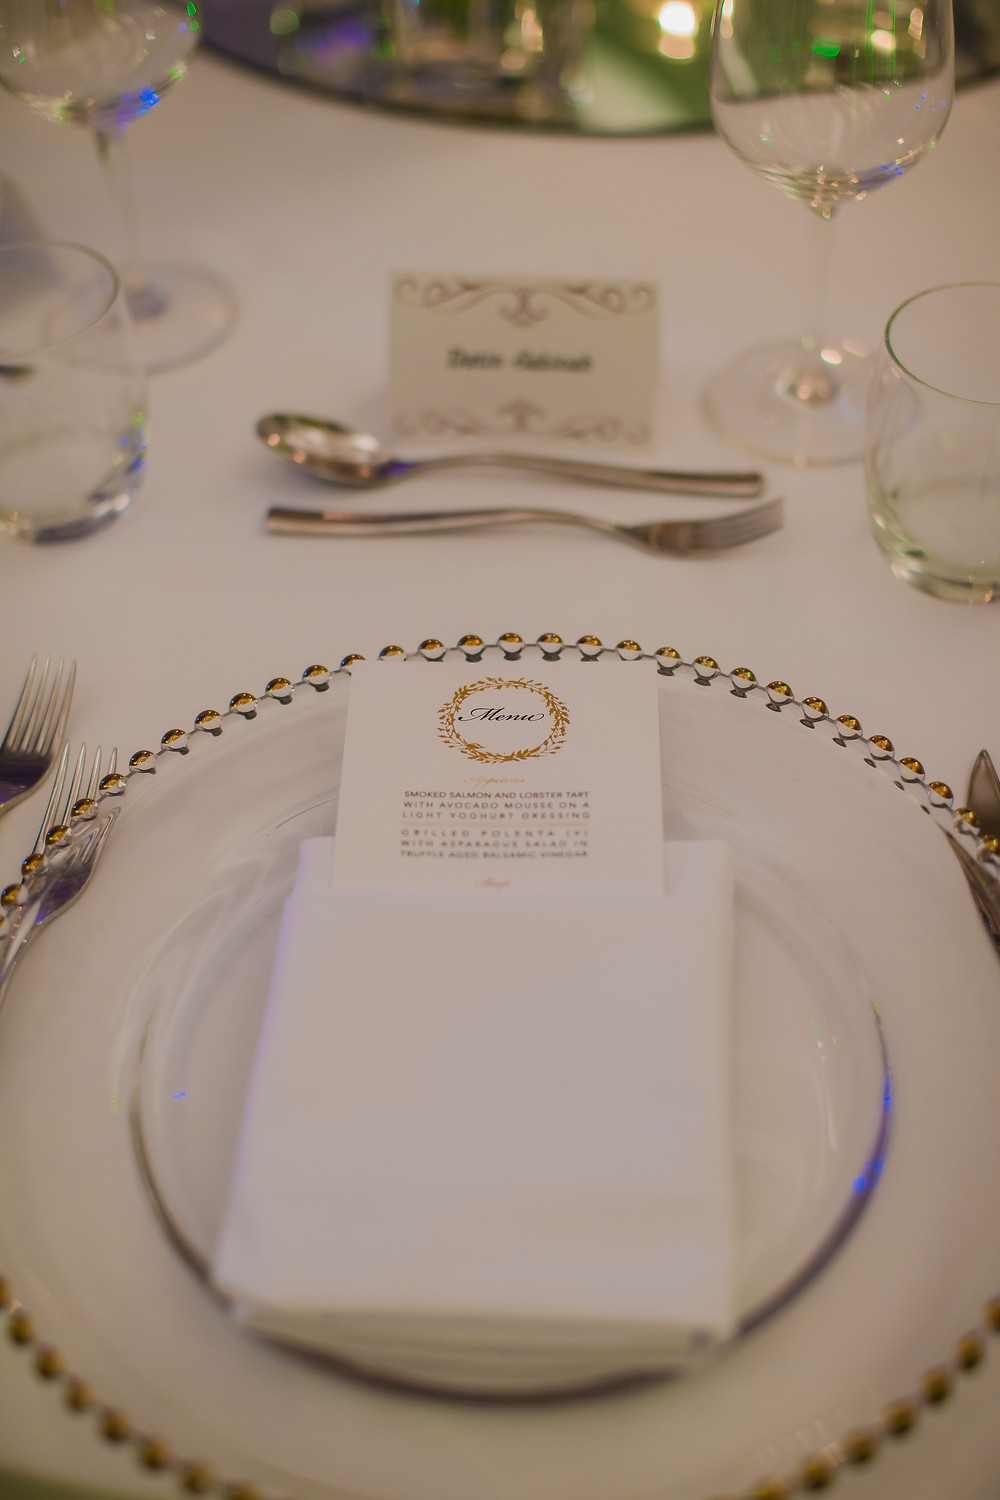 The Table was also dress up in Elegance Them, with Gold printing menu and gold cutlery.